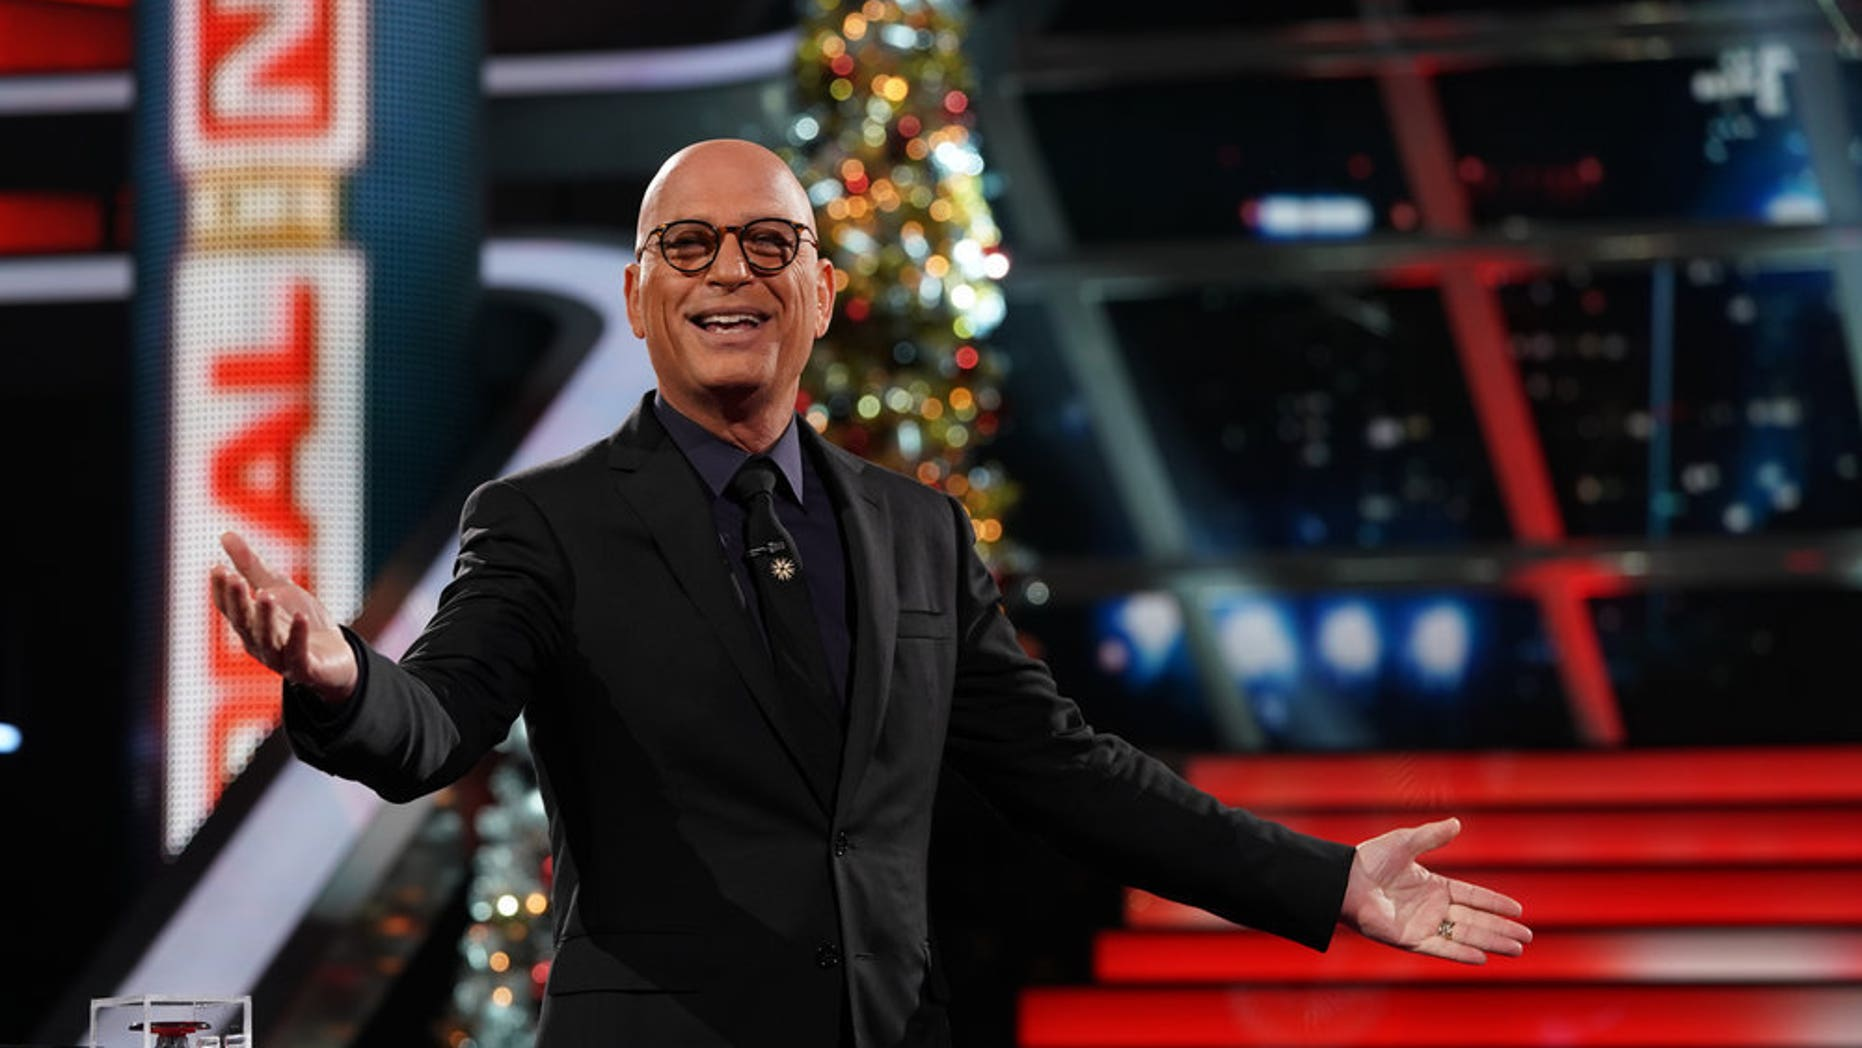 A contestant passed up $333,000 on the holiday episode of 'Deal or No Deal.'